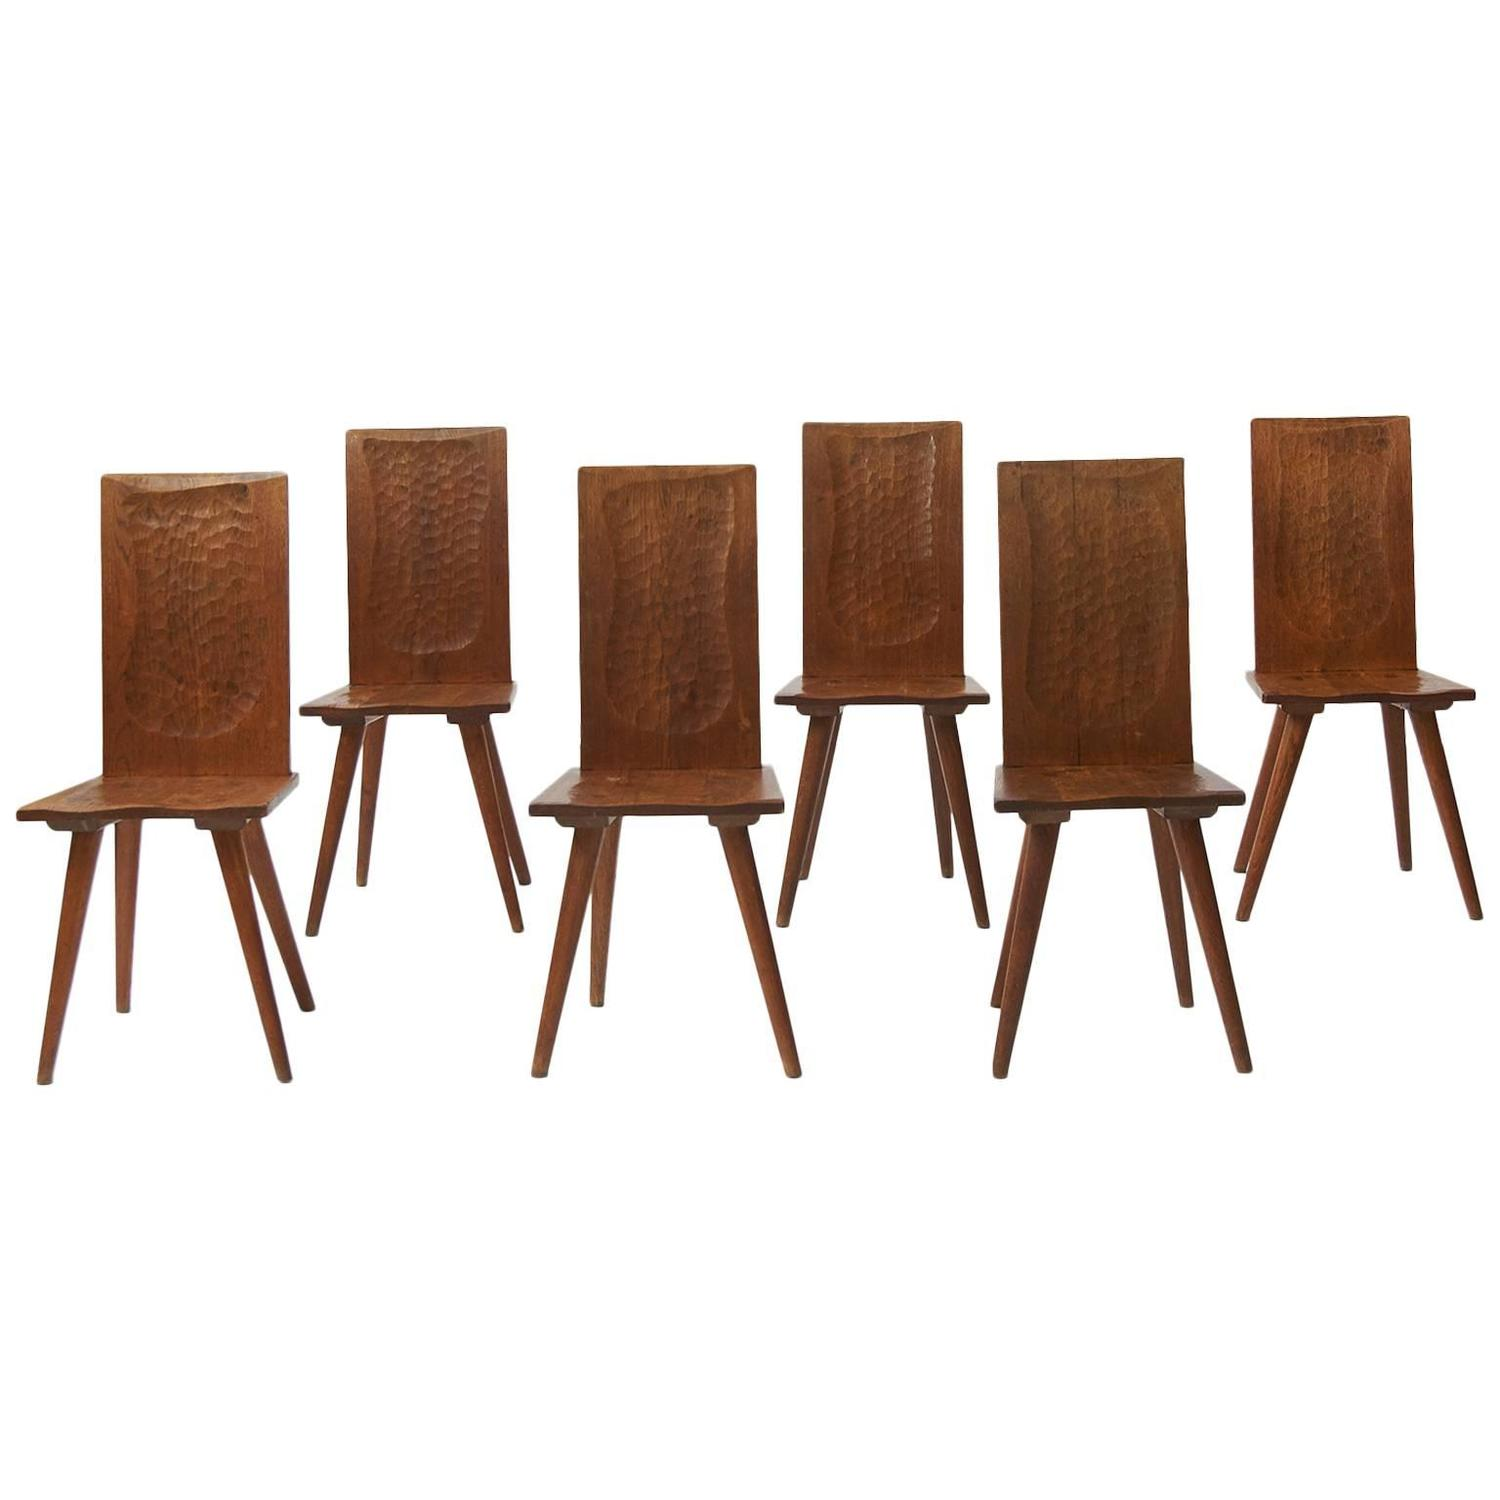 Of four chairs in oak and patinated cognac leather for sale at 1stdibs - Jean Touret Dining Chairs For Atelier Marolles